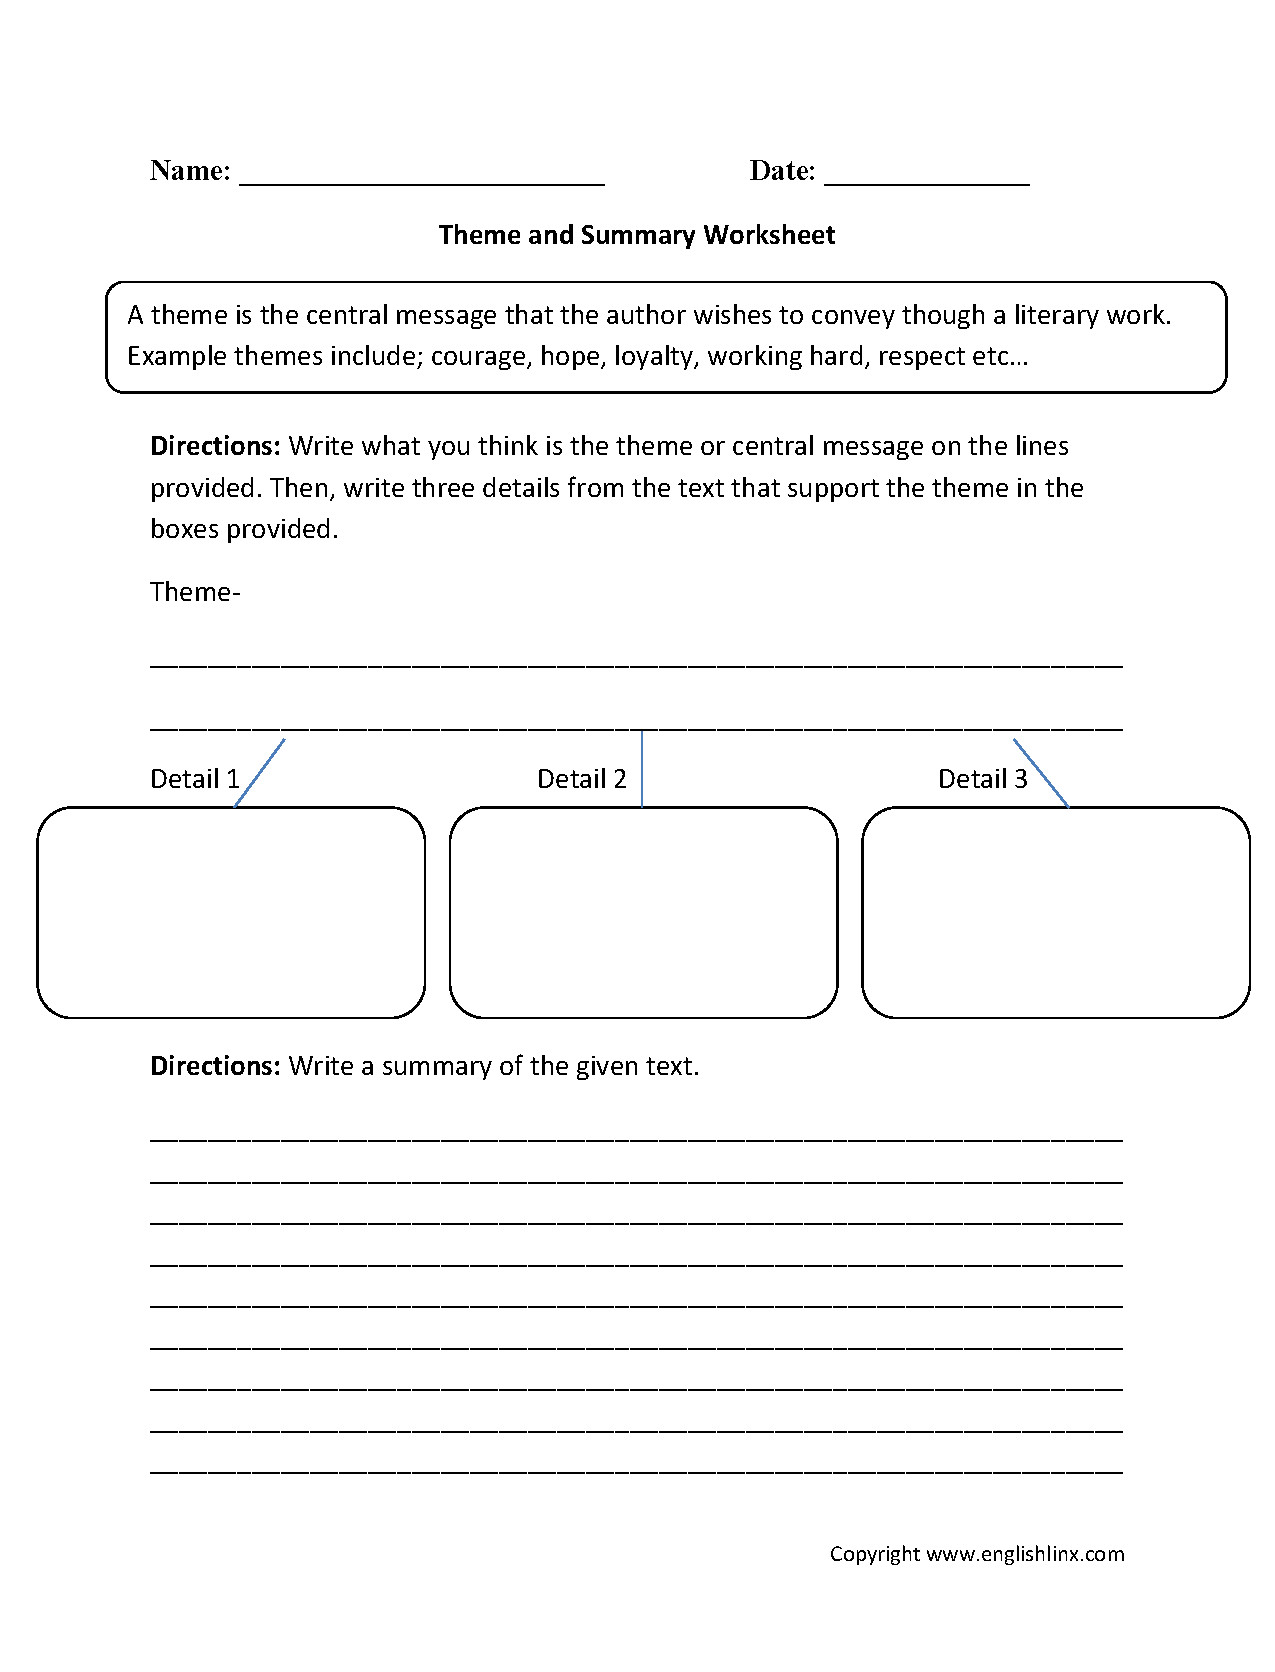 Theme Worksheet 4th Grade theme Worksheet Excel